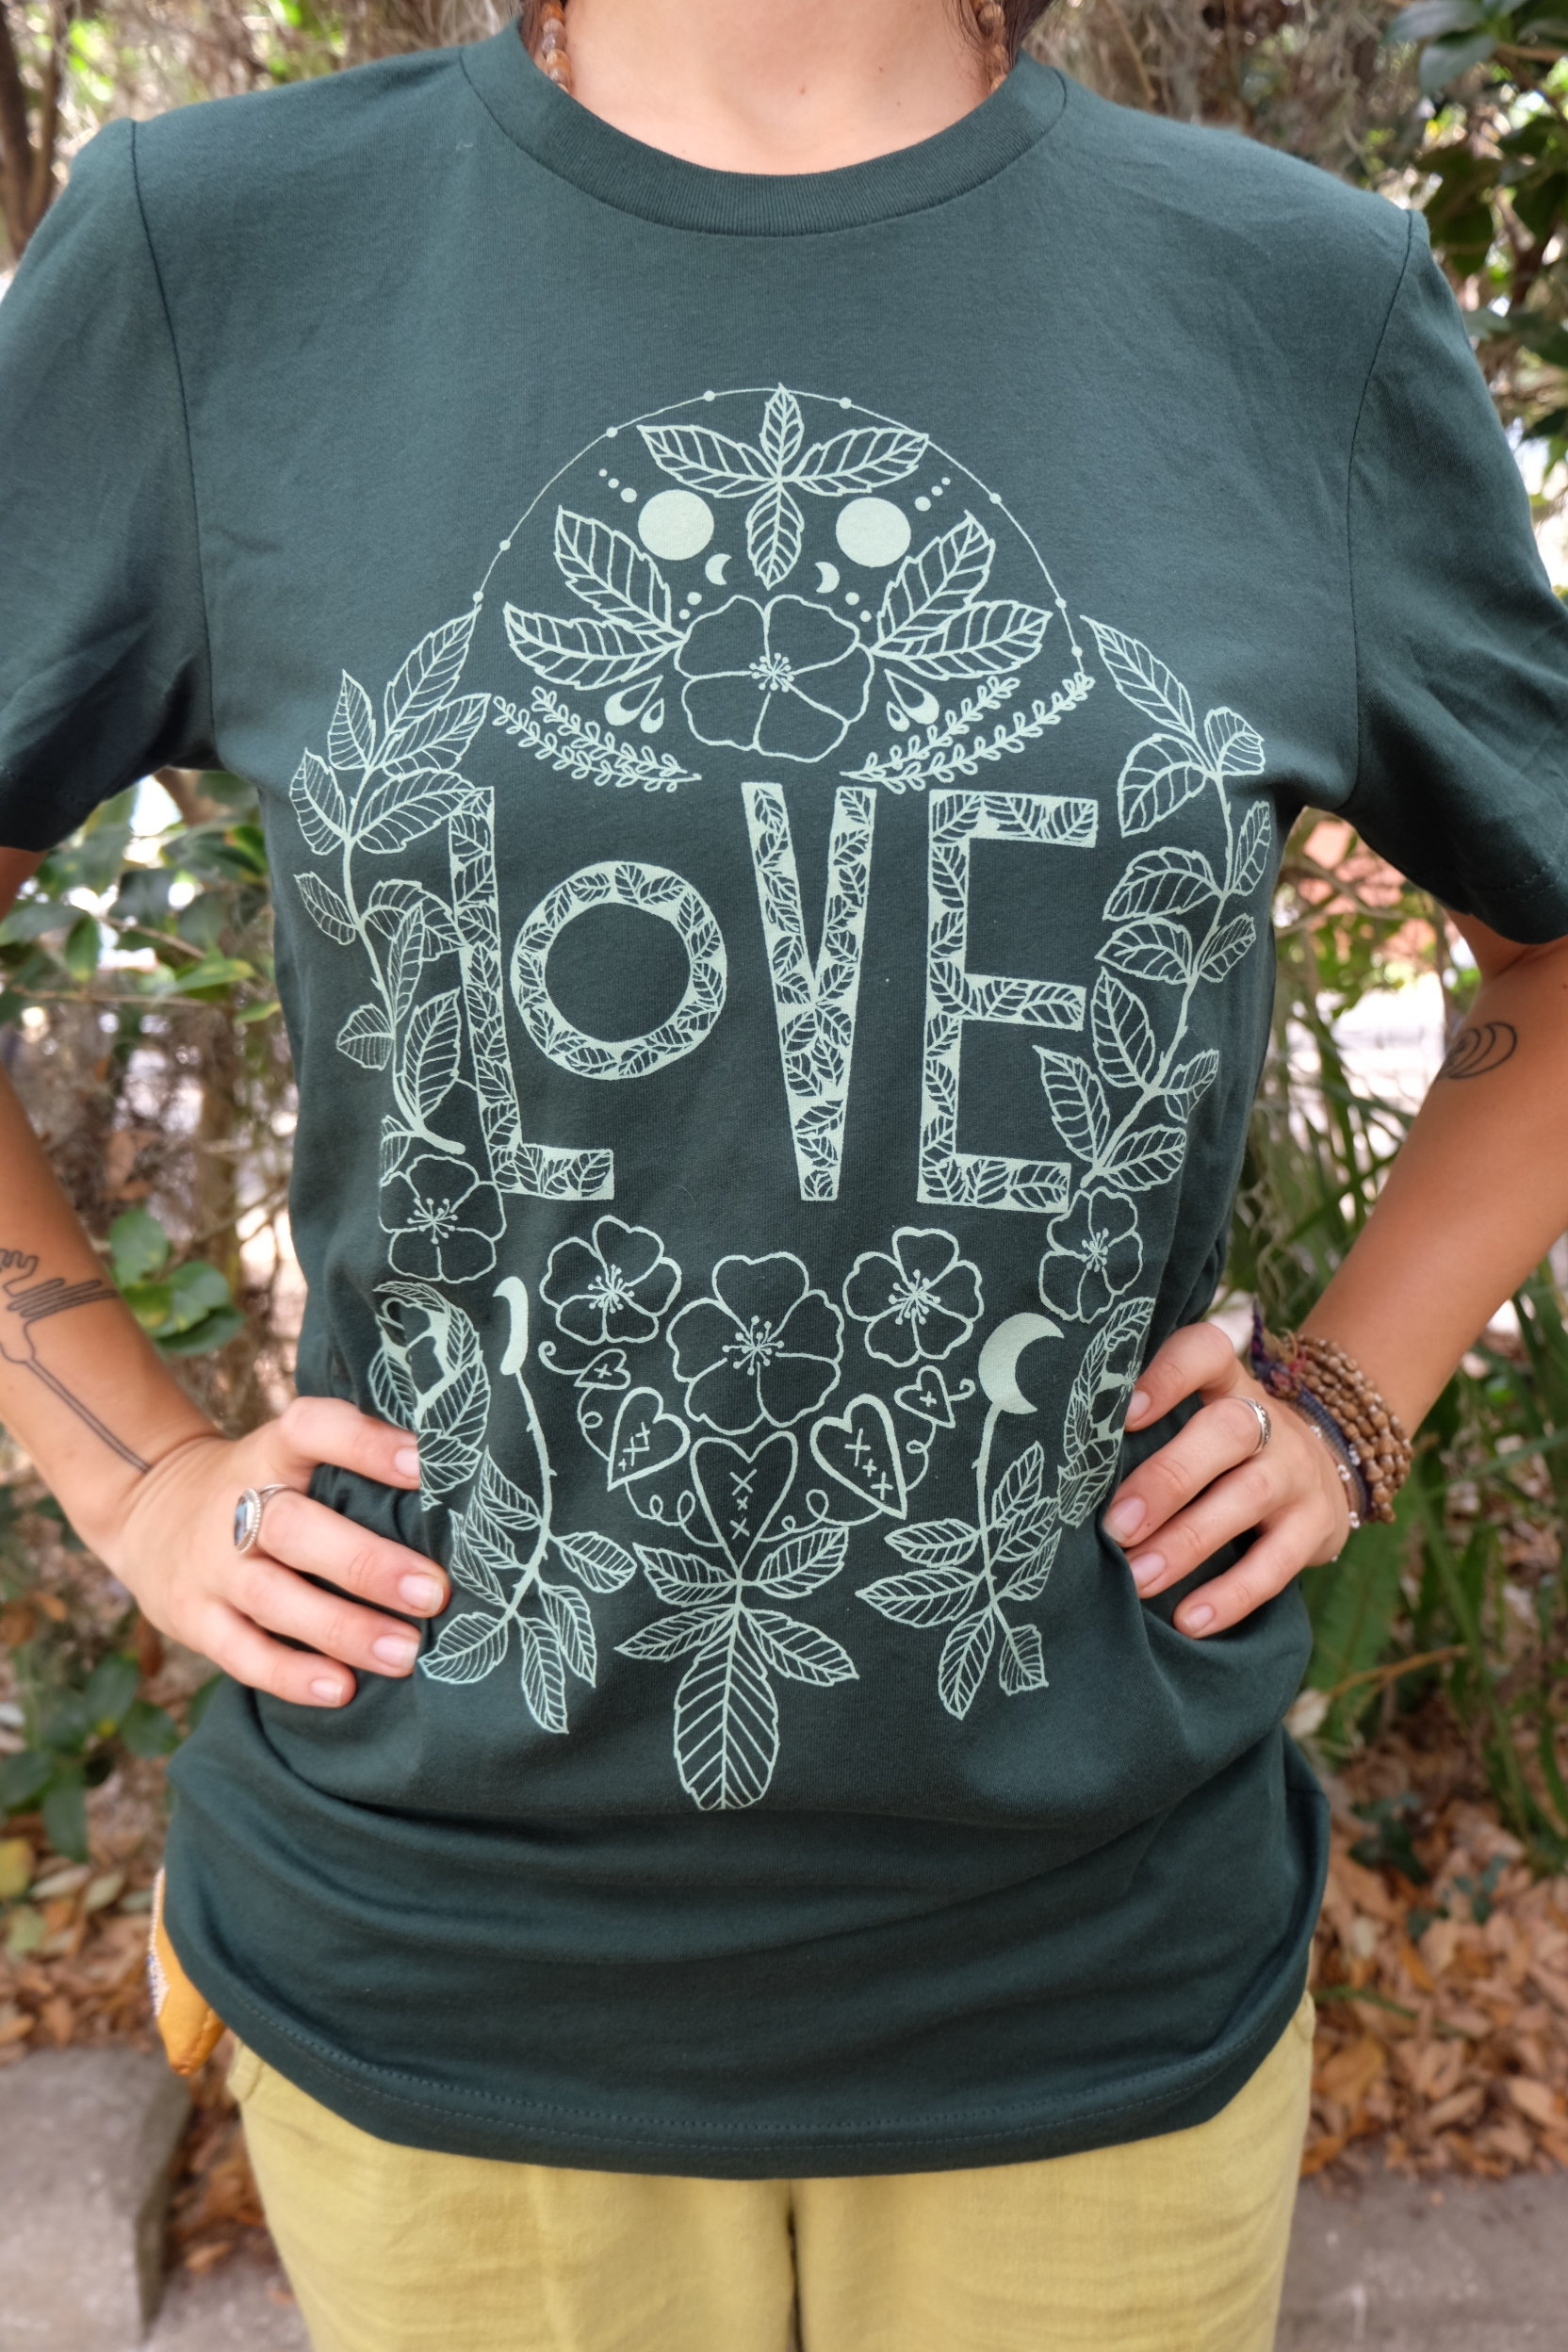 OGCP Unisex Short Sleeved Tee - Love, Wild Rose